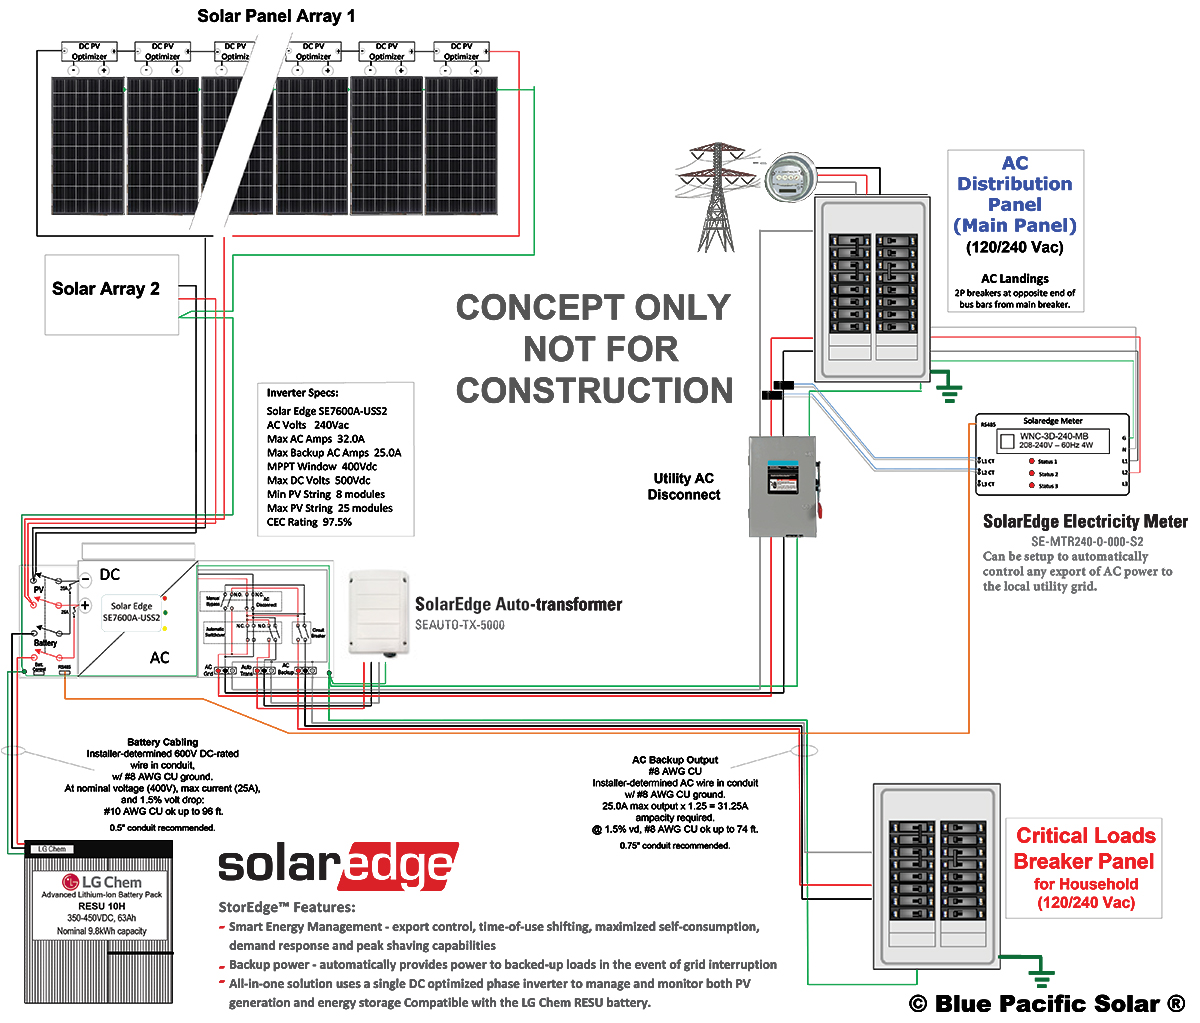 Modbus Wiring Diagram Solar Inverters Worksheet And For Power System Solaredge Storedge 14 4 Kw Kit 300w Solarworld Panels Backup Rh Bluepacificsolar Com Grid Tie Panel Inverter Circuit